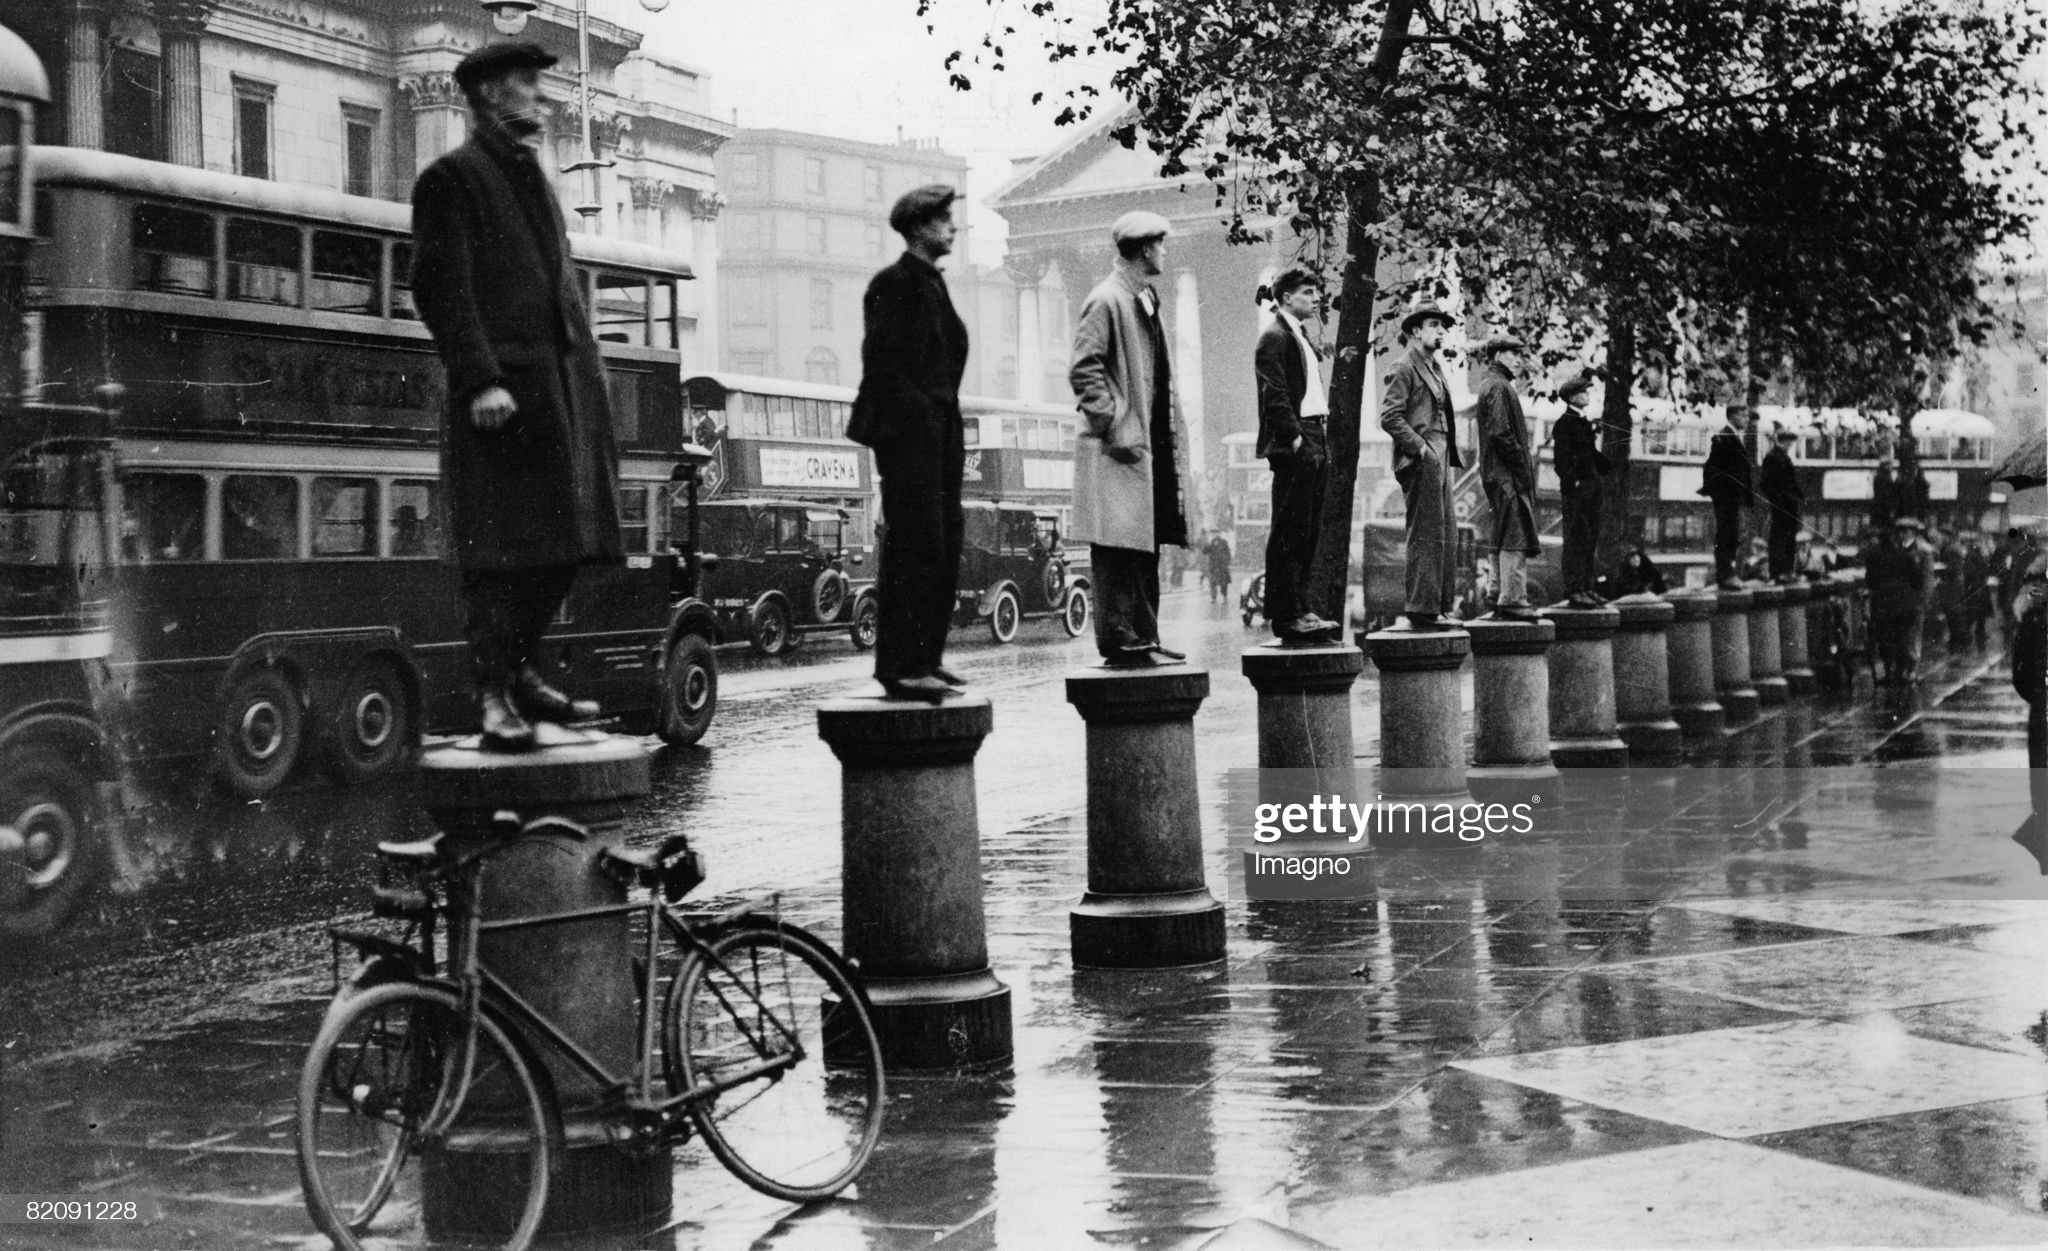 Thousand unemployed people demonstrating in London, Some man standing on collumns at Trafalgar Square, England, Photograph, October 31st 1932 : News Photo